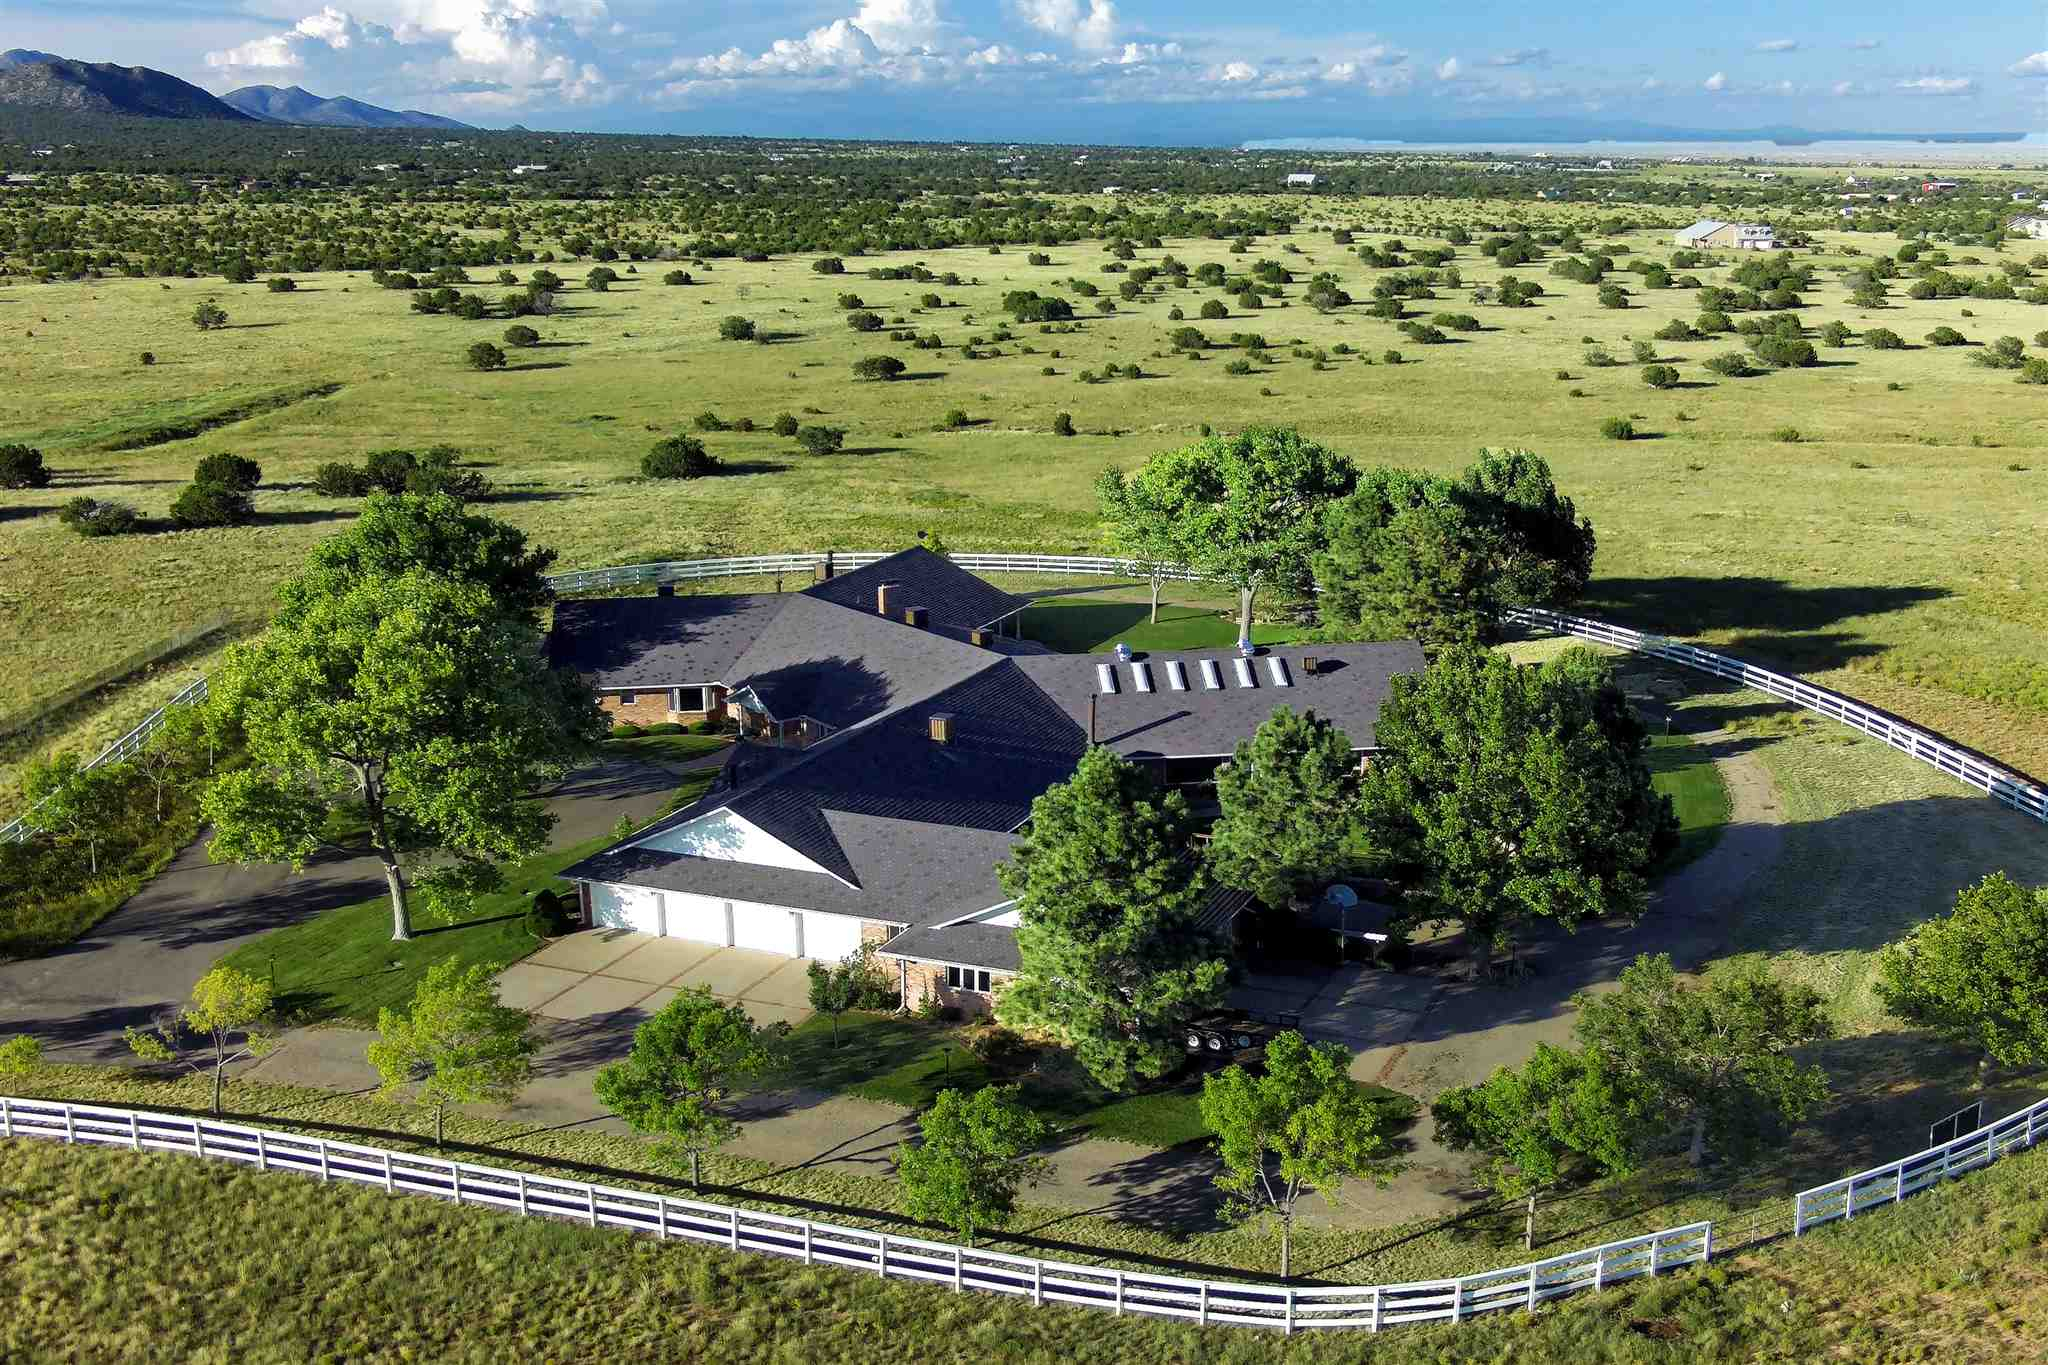 Where the mountains meet the Great Plains, this charming equestrian property know as The Starlight Ranch has captured the essence of the Wild West while elegantly merging beautiful detailing and a thoughtful floor plan in this one-of-a-kind Bob Coe home. Situated next to the San Pedro Mountains just on the outskirts of south Santa Fe county, the entire property encompasses 85 completely fenced acres which include an 11,900 sq.ft. single-level bricked home with 7 heated, direct entry garages and 2 carports. Features include evaporative cooling, zoned baseboard heating, natural gas, new electric solar panels, fiber high-speed internet, 2 septic systems, central vacuum, and a gated entry with a whole-house security system in place. A heated, indoor upgraded 20'x40' Gunite pool with additional kitchen/serving facilities and entertaining spaces is centered in between the kitchen, game room, and living spaces. Just behind the property is lovely pasture land, a riding area, and a 4-stall BarnMaster metal barn with a center aisle and turnouts-equipped with water and electricity. Vistas of the nearby San Pedro Mountain, valley and Sandia mountain range just miles from the Turquoise National Scenic Byway, can be admired from most living and bedroom spaces, as well as from over 1,700 sq.ft. of patio and outdoor entertaining areas.  (continued below)